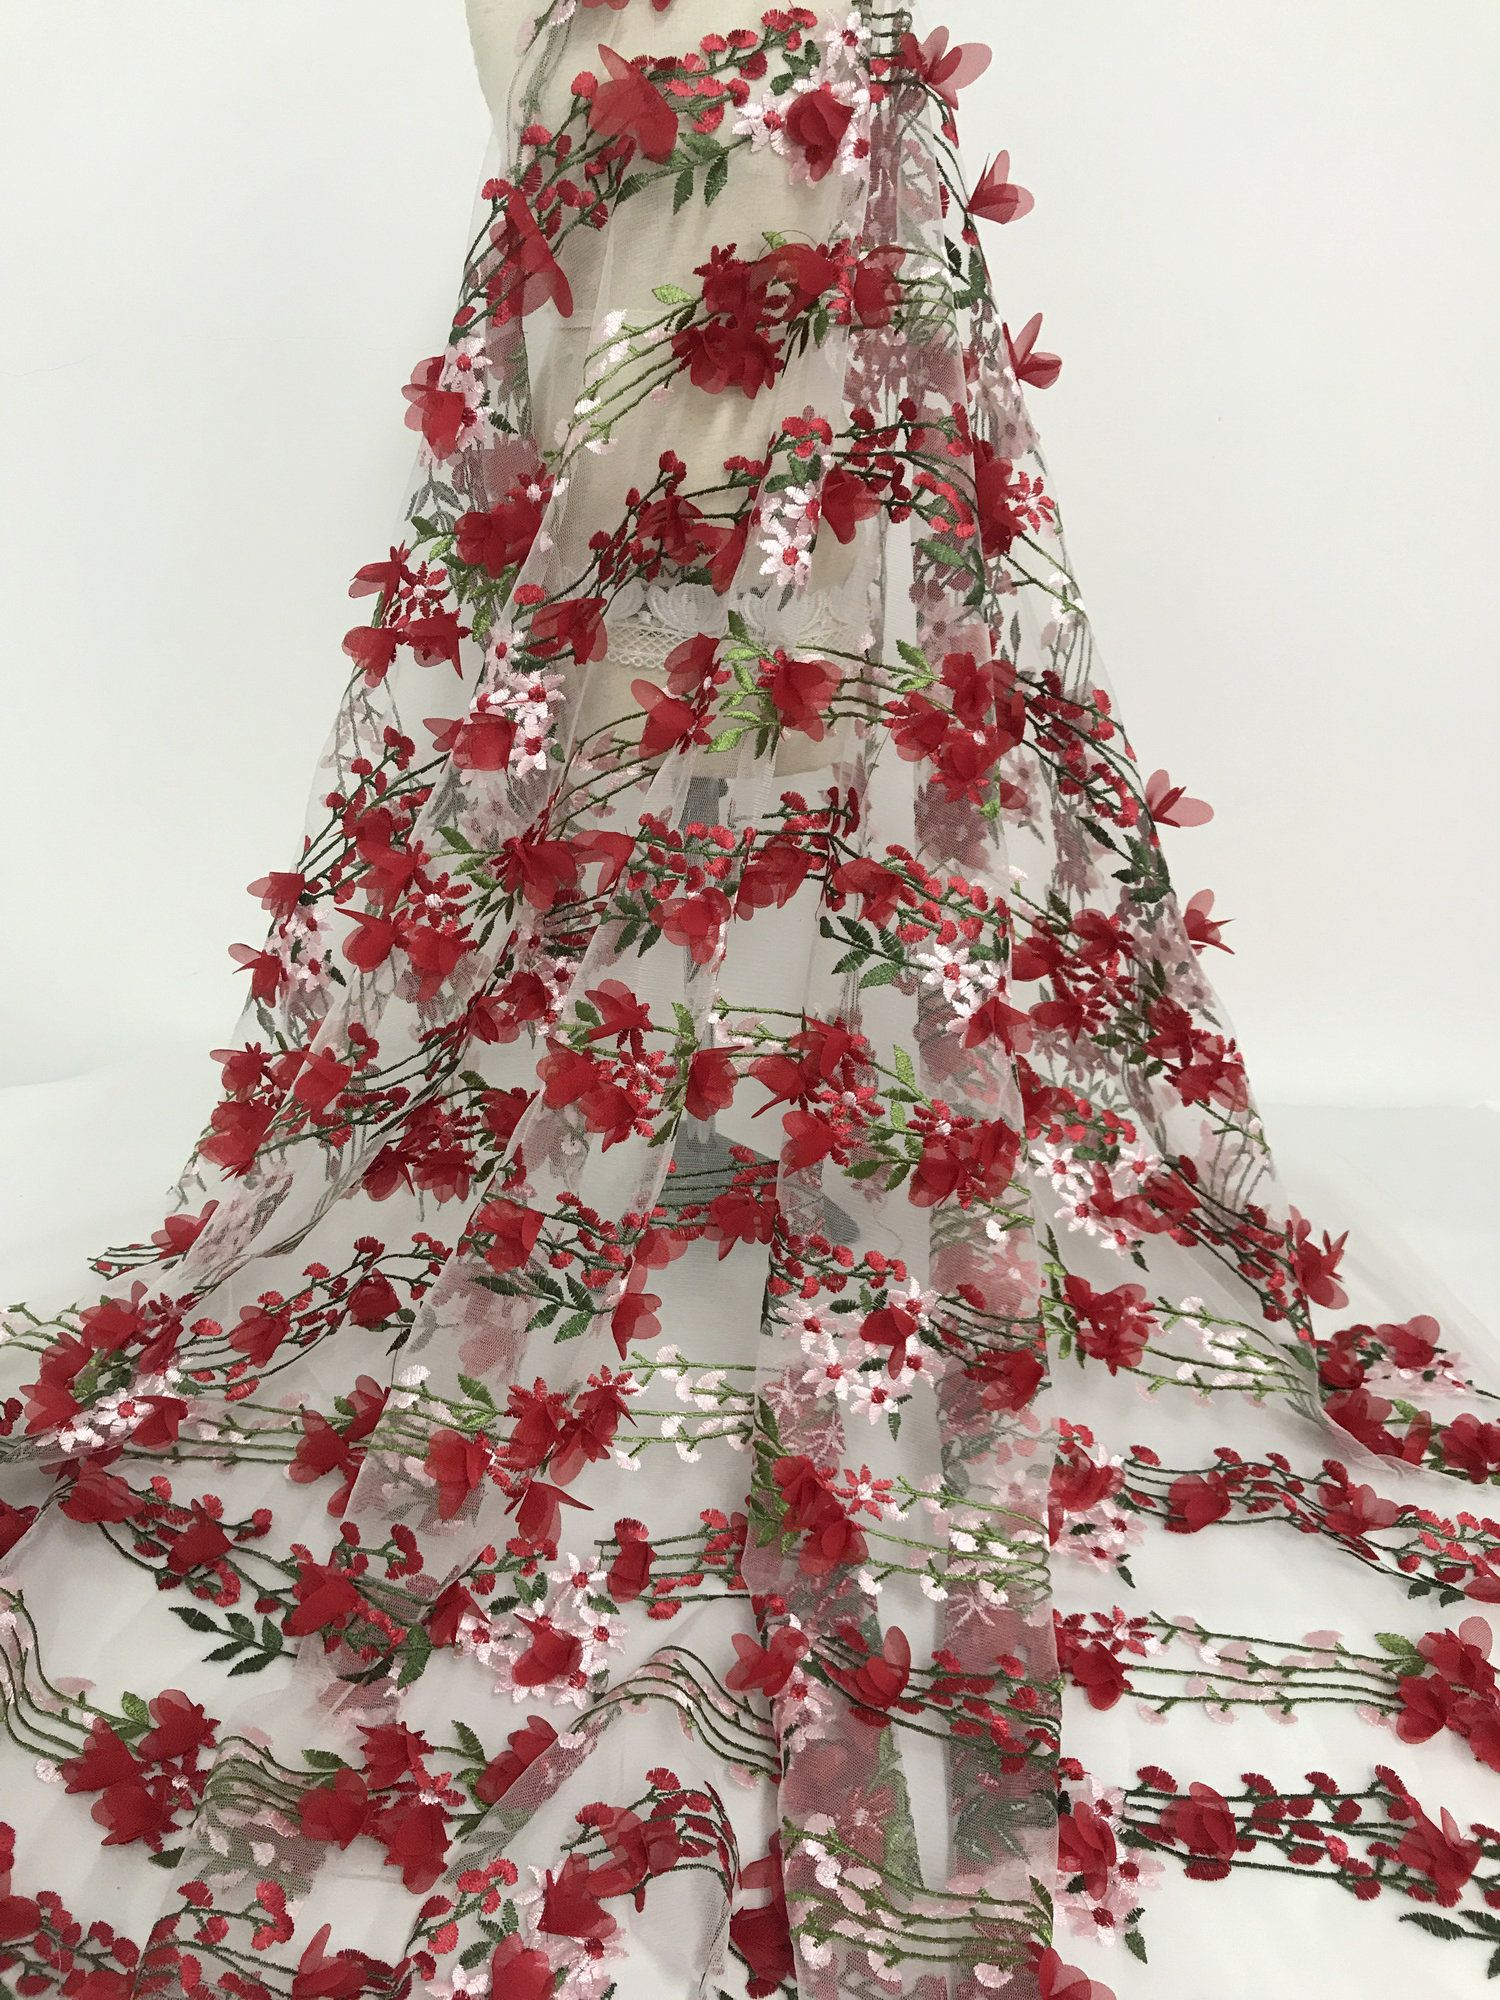 Red 3d Chiffon Flowers Lace Fabric Tulle Lace Fabric With 3d